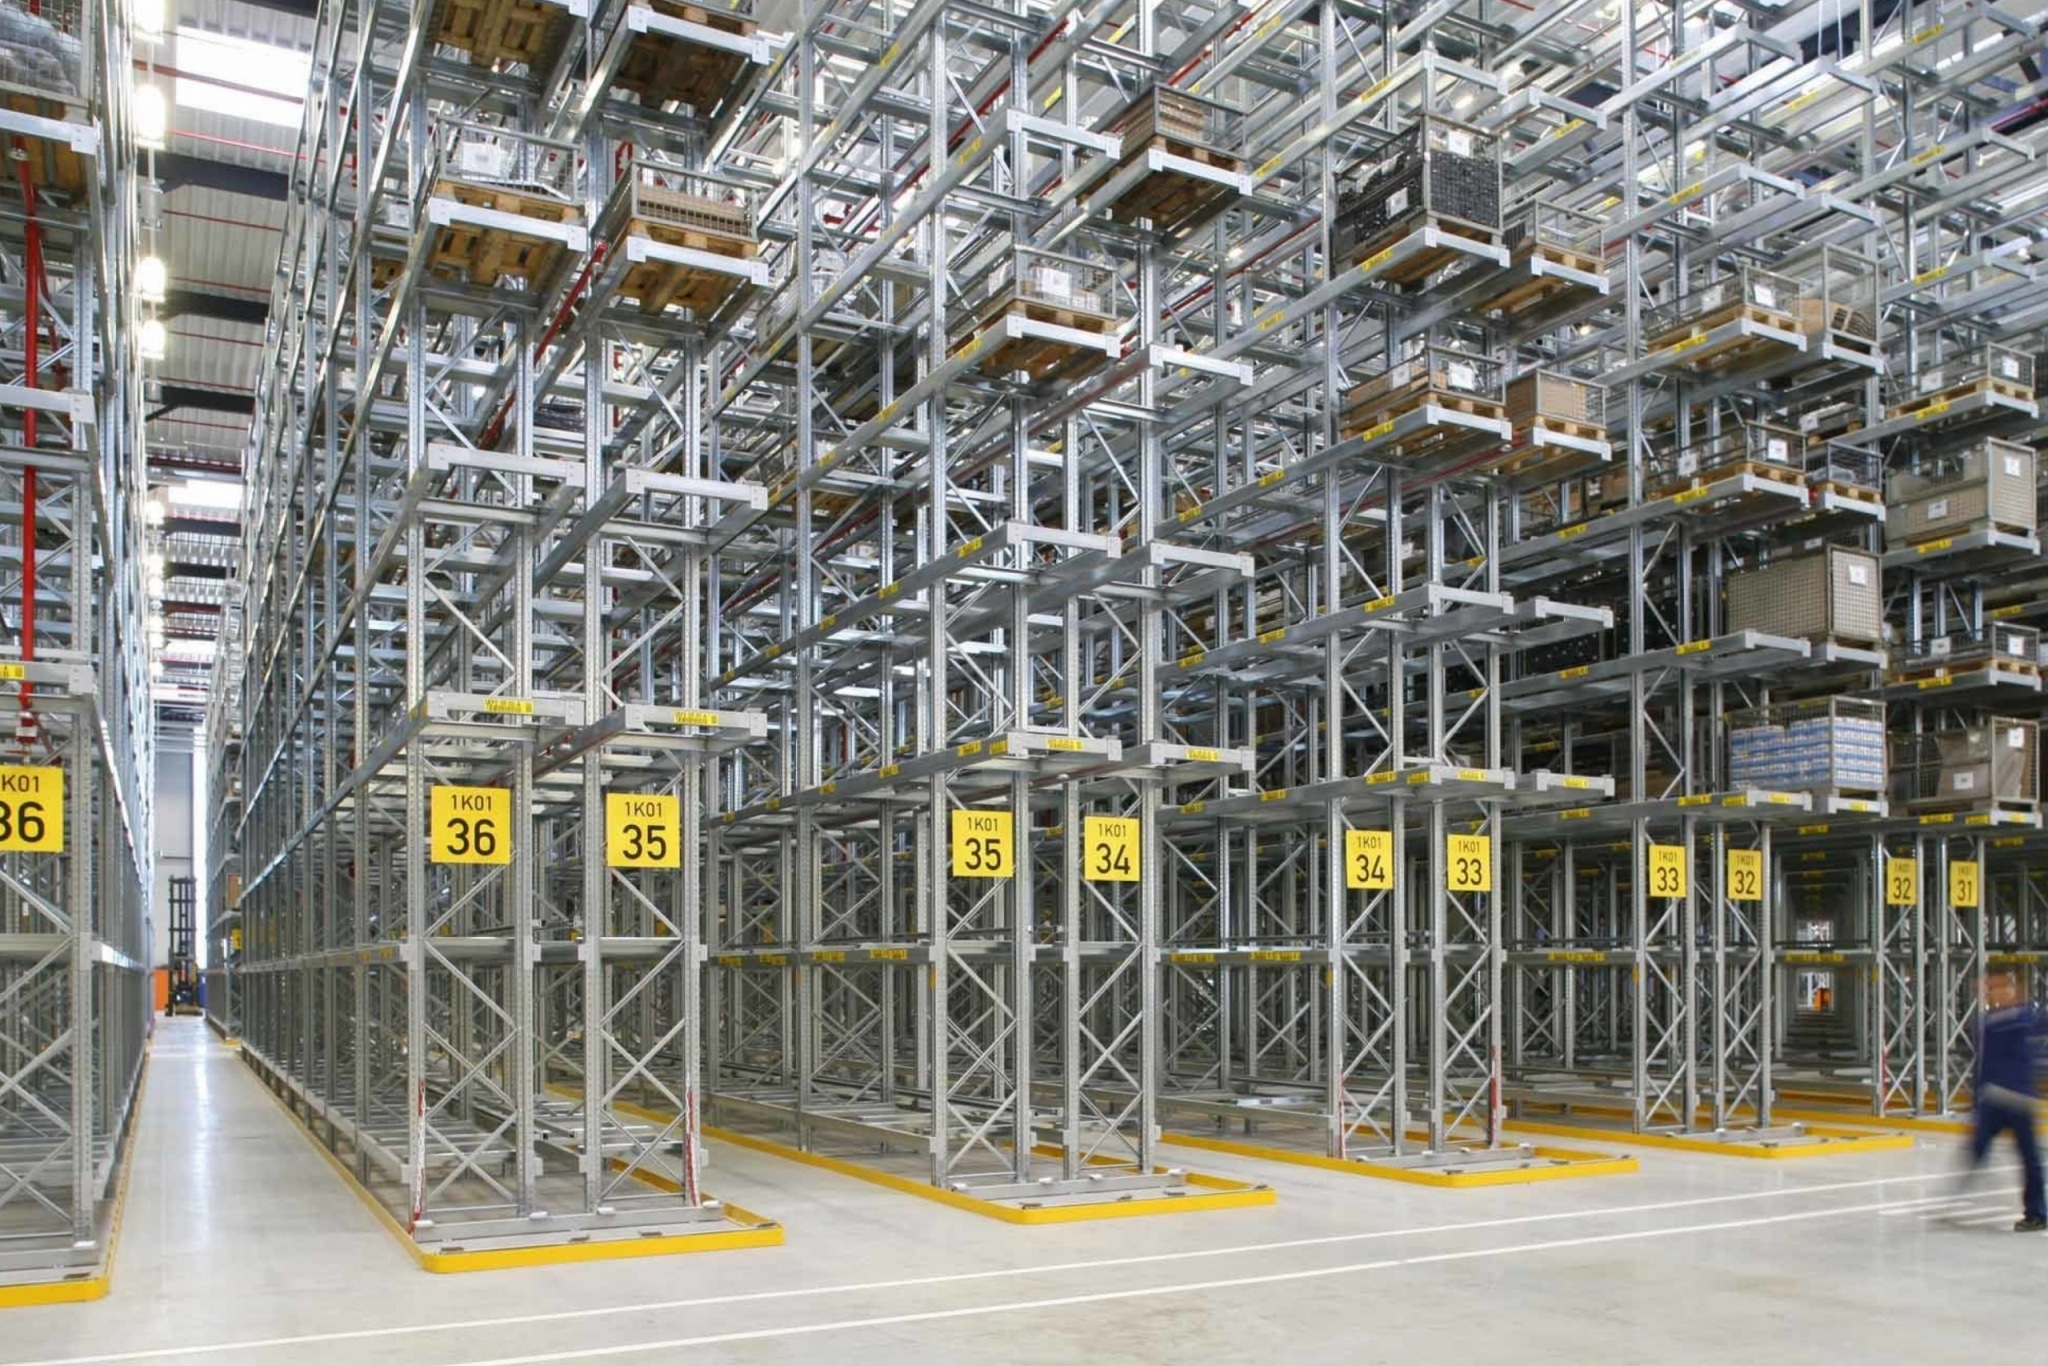 Narrow Isle Pallet Racking